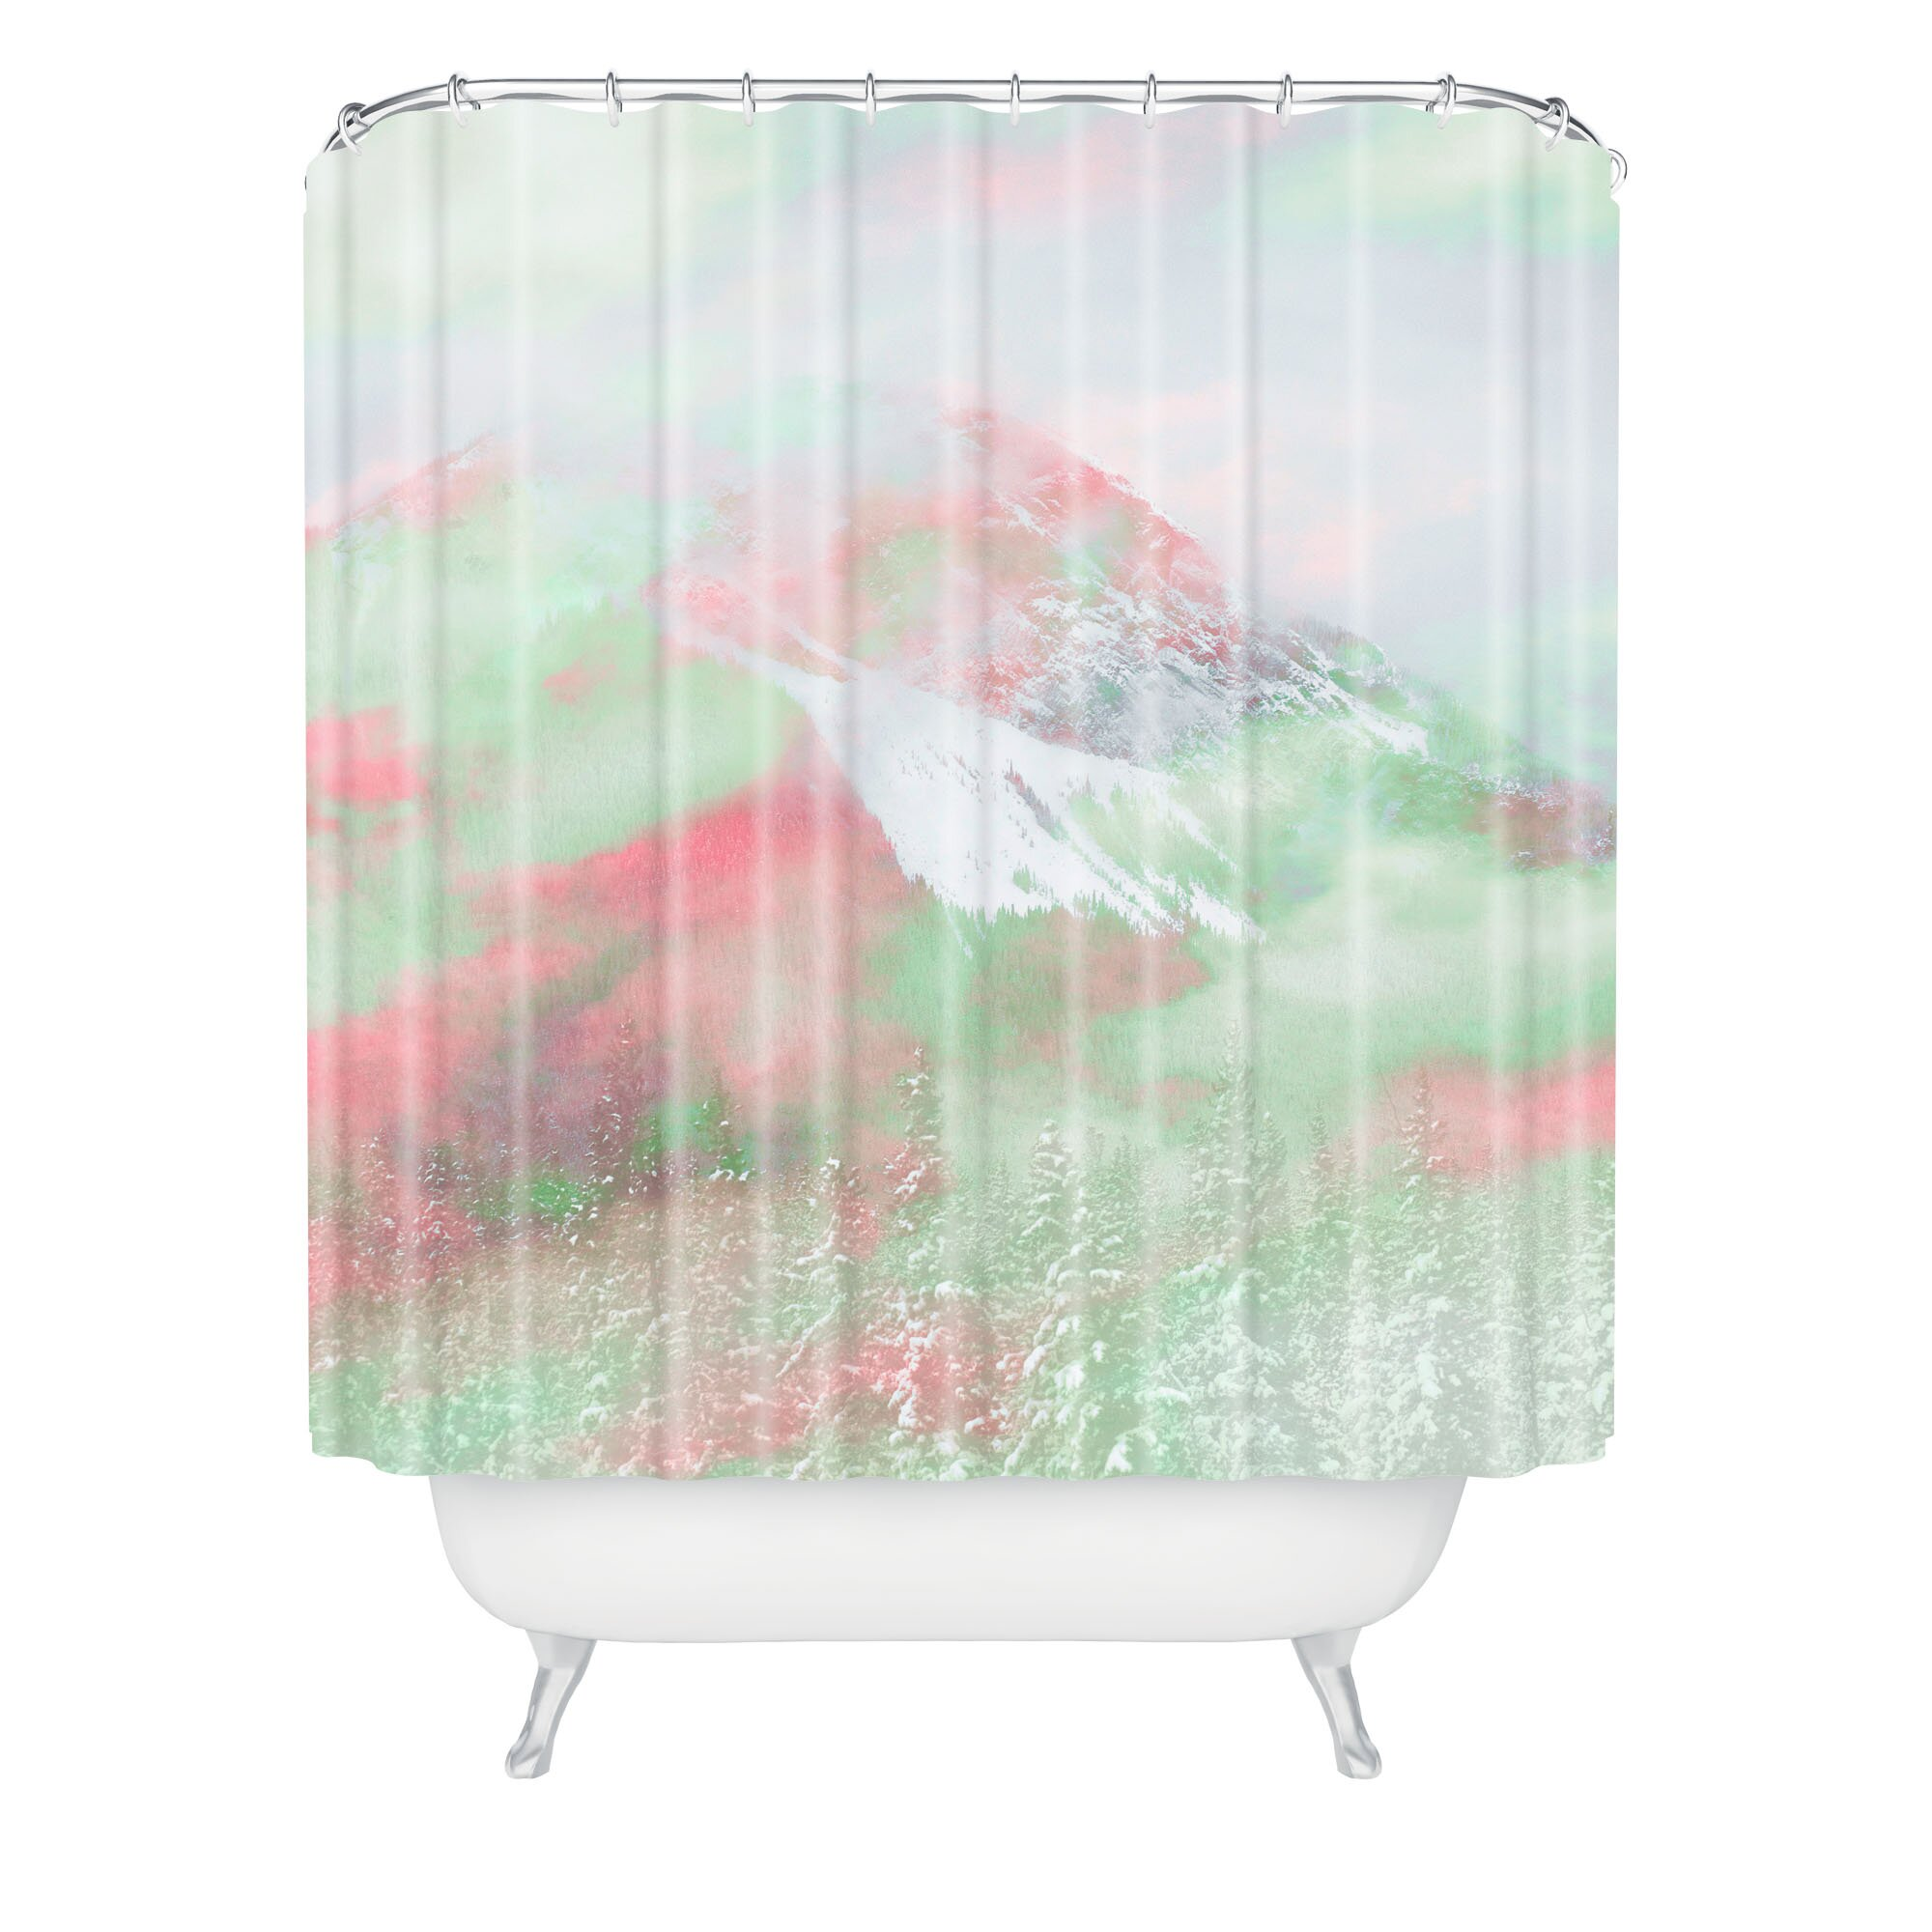 Caleb Troy Banff Painted Christmas Shower Curtain by DENY Designs